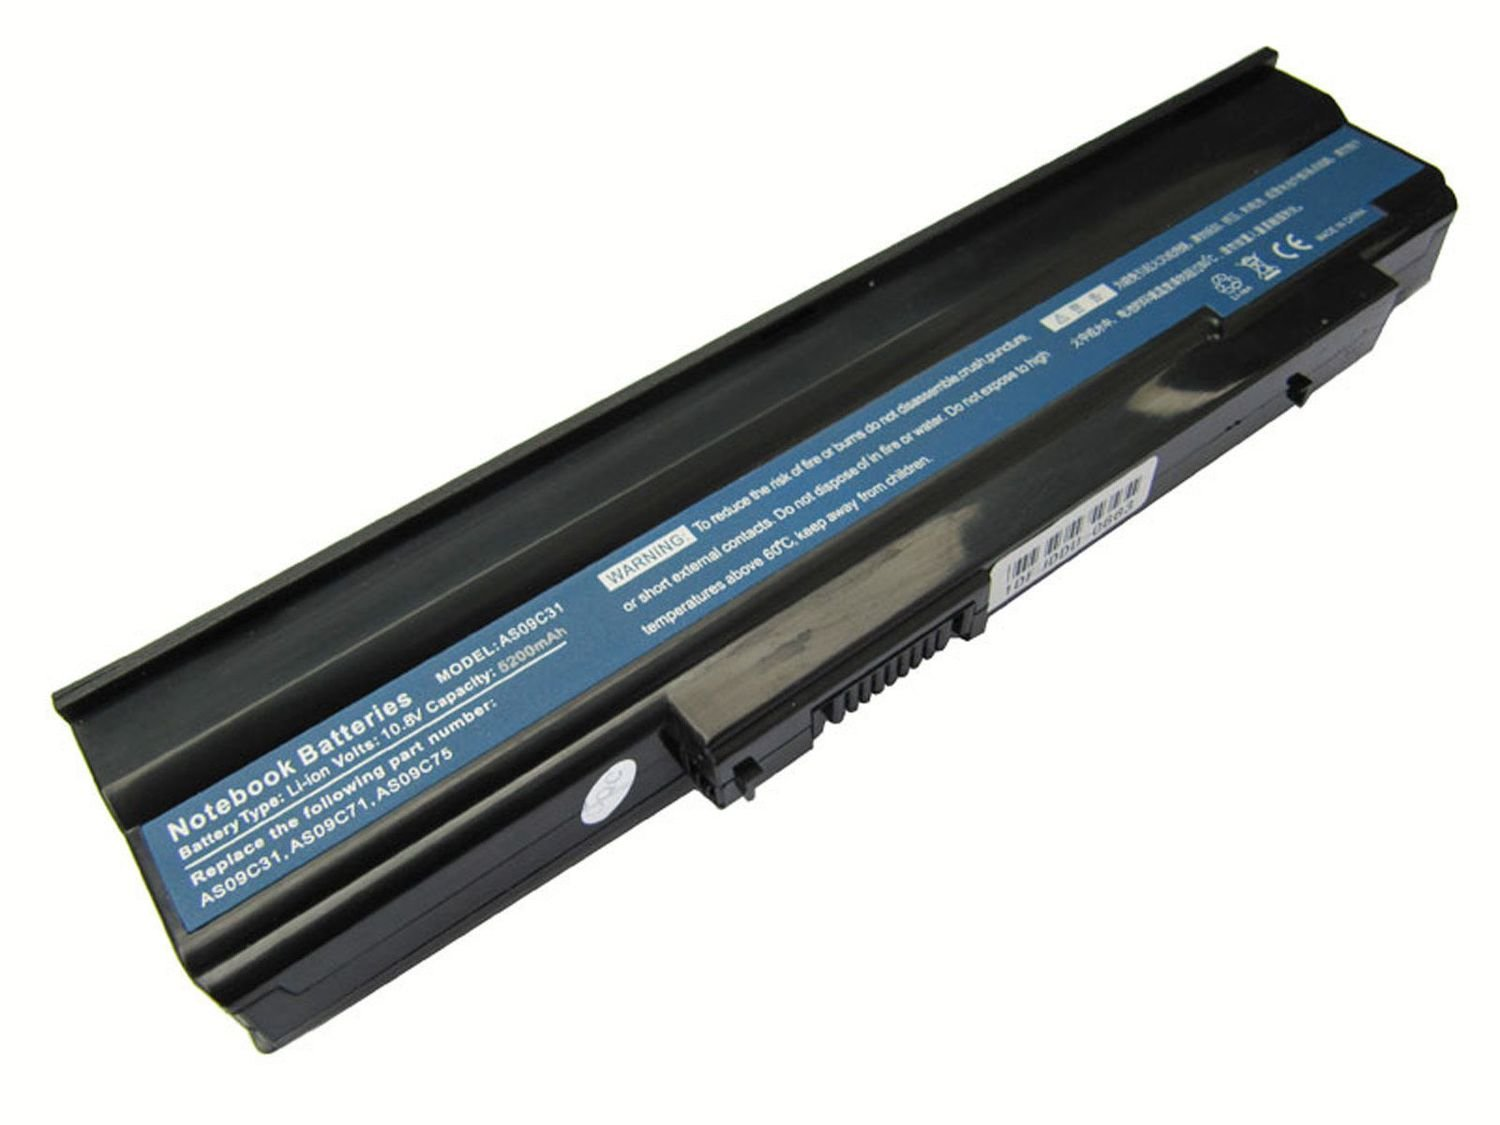 Acer Extensa E728 5635ZG-444G50MN compatible laptop battery